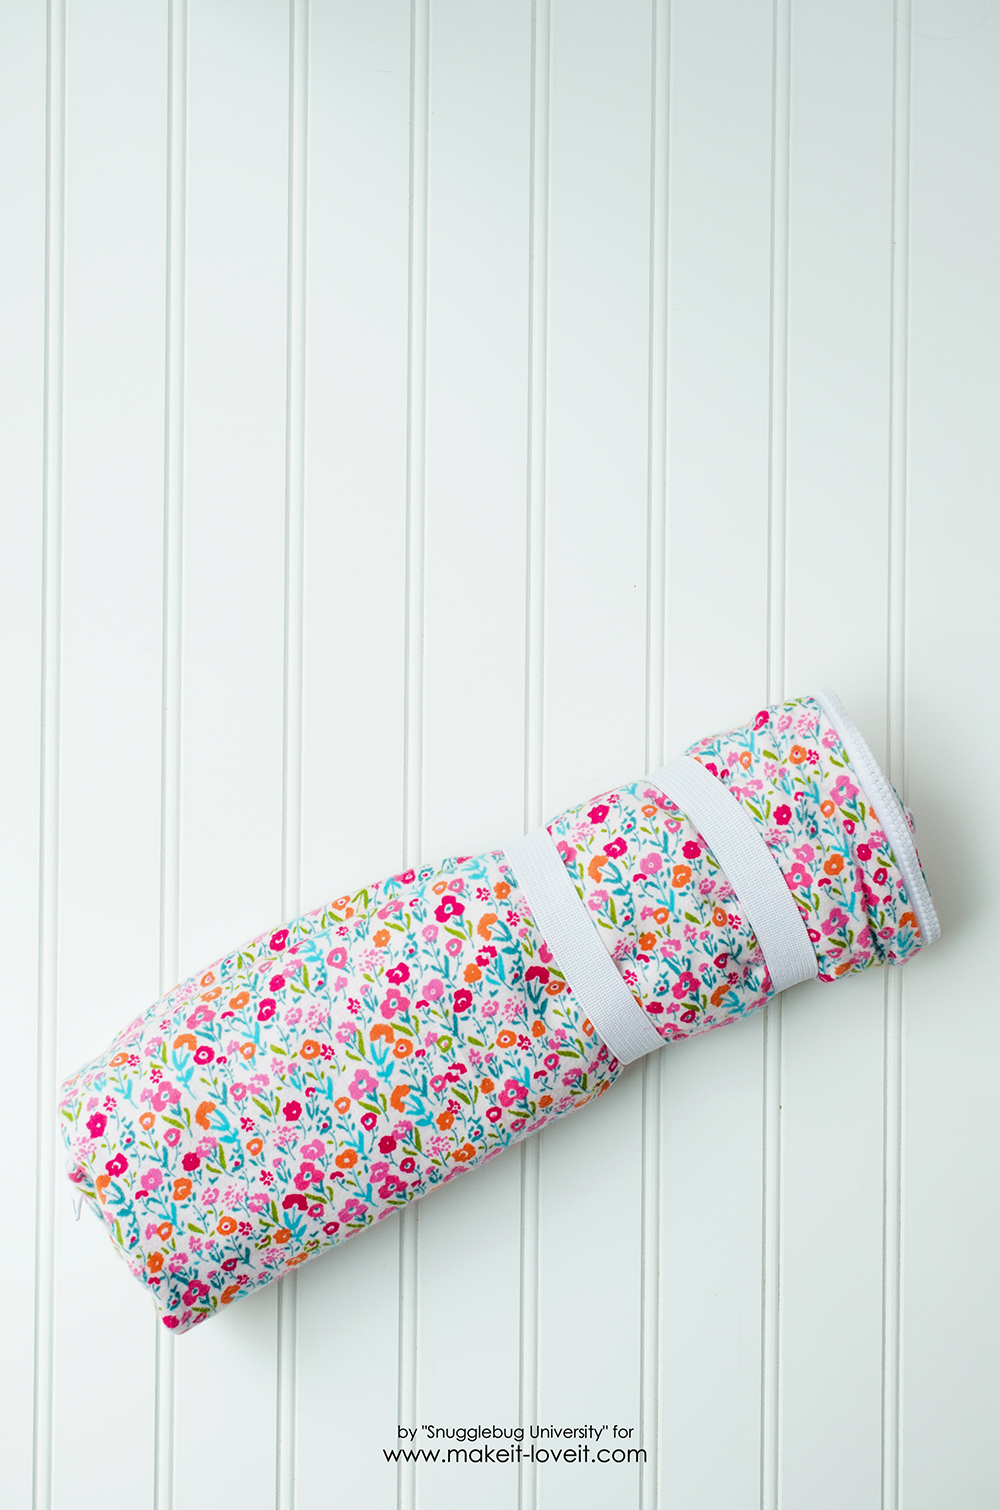 Sew a Sleeping Bag for an 18 Inch Doll | via www.makeit-loveit.com